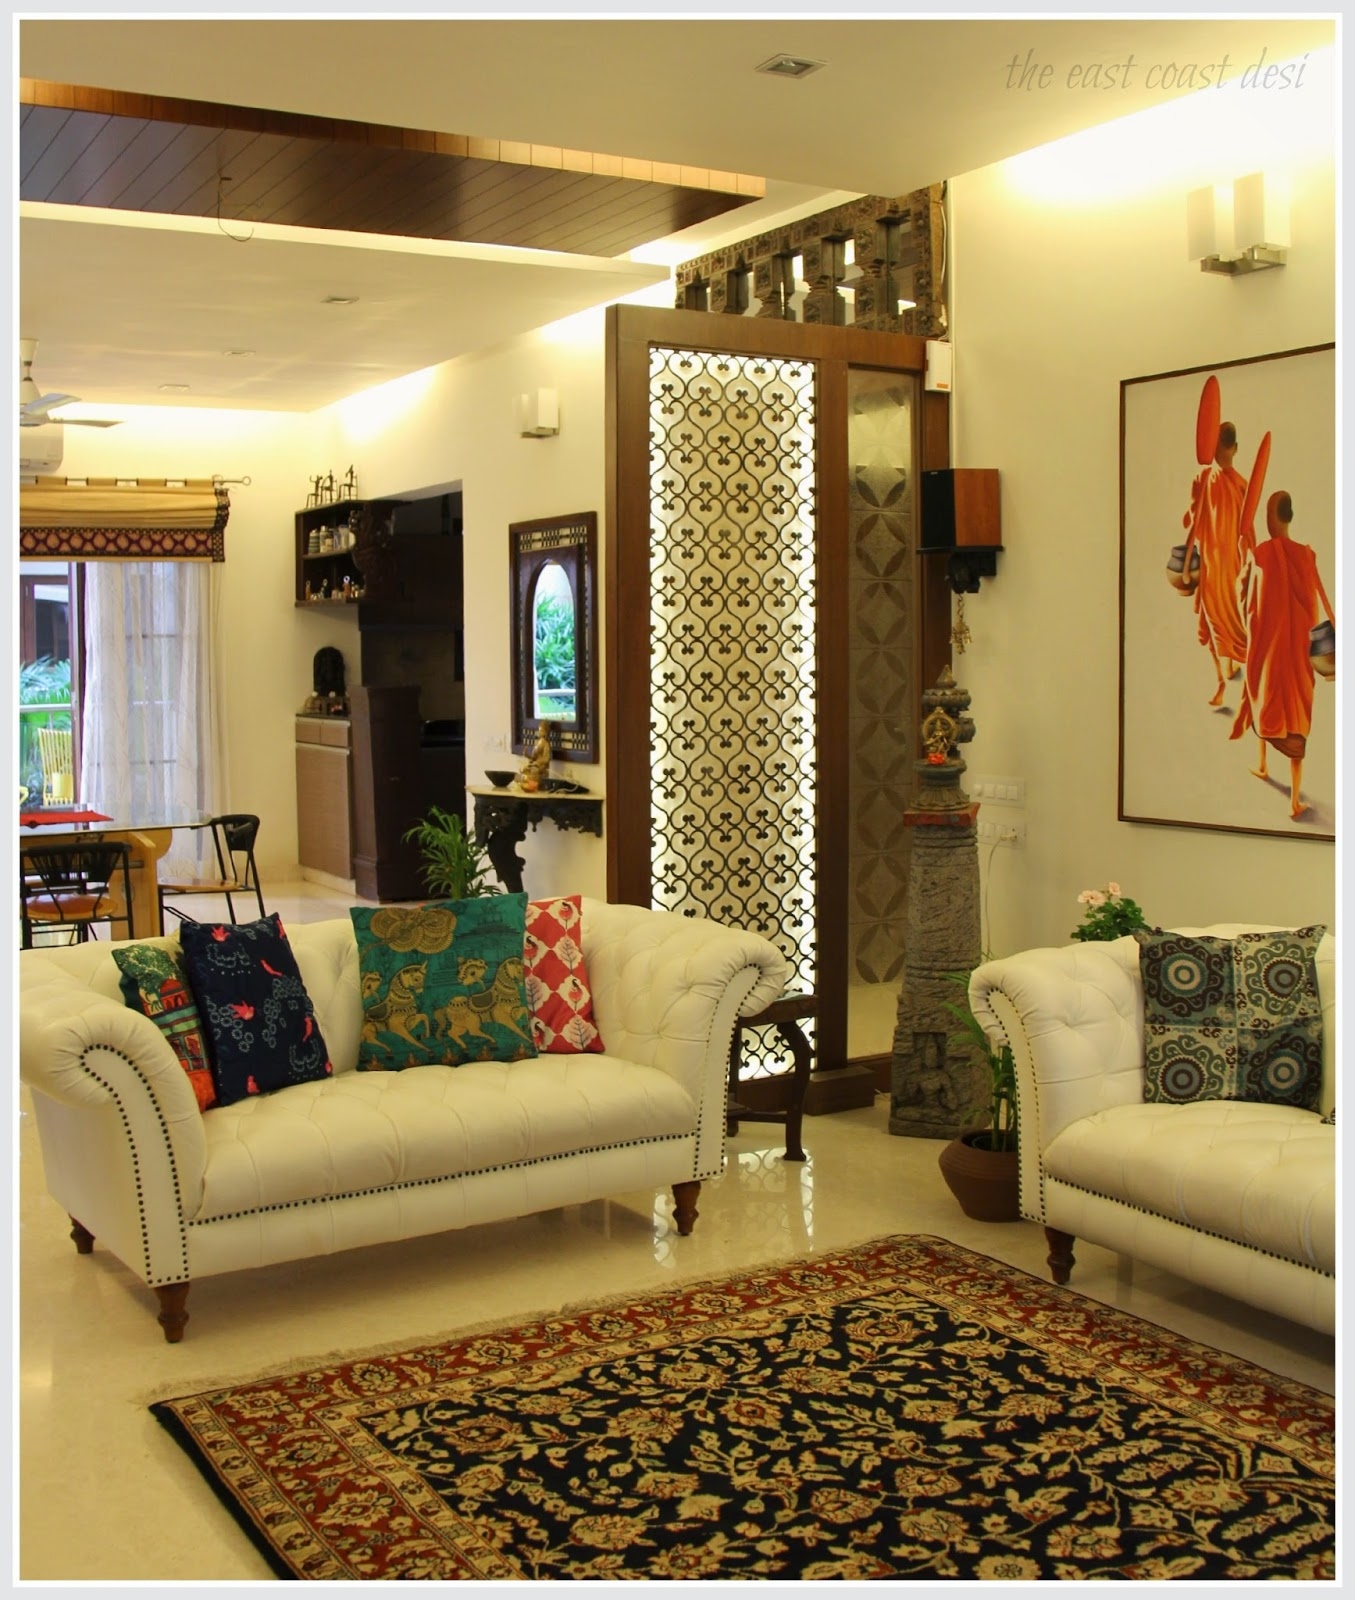 The east coast desi masterful mixing home tour Interior partitions for homes